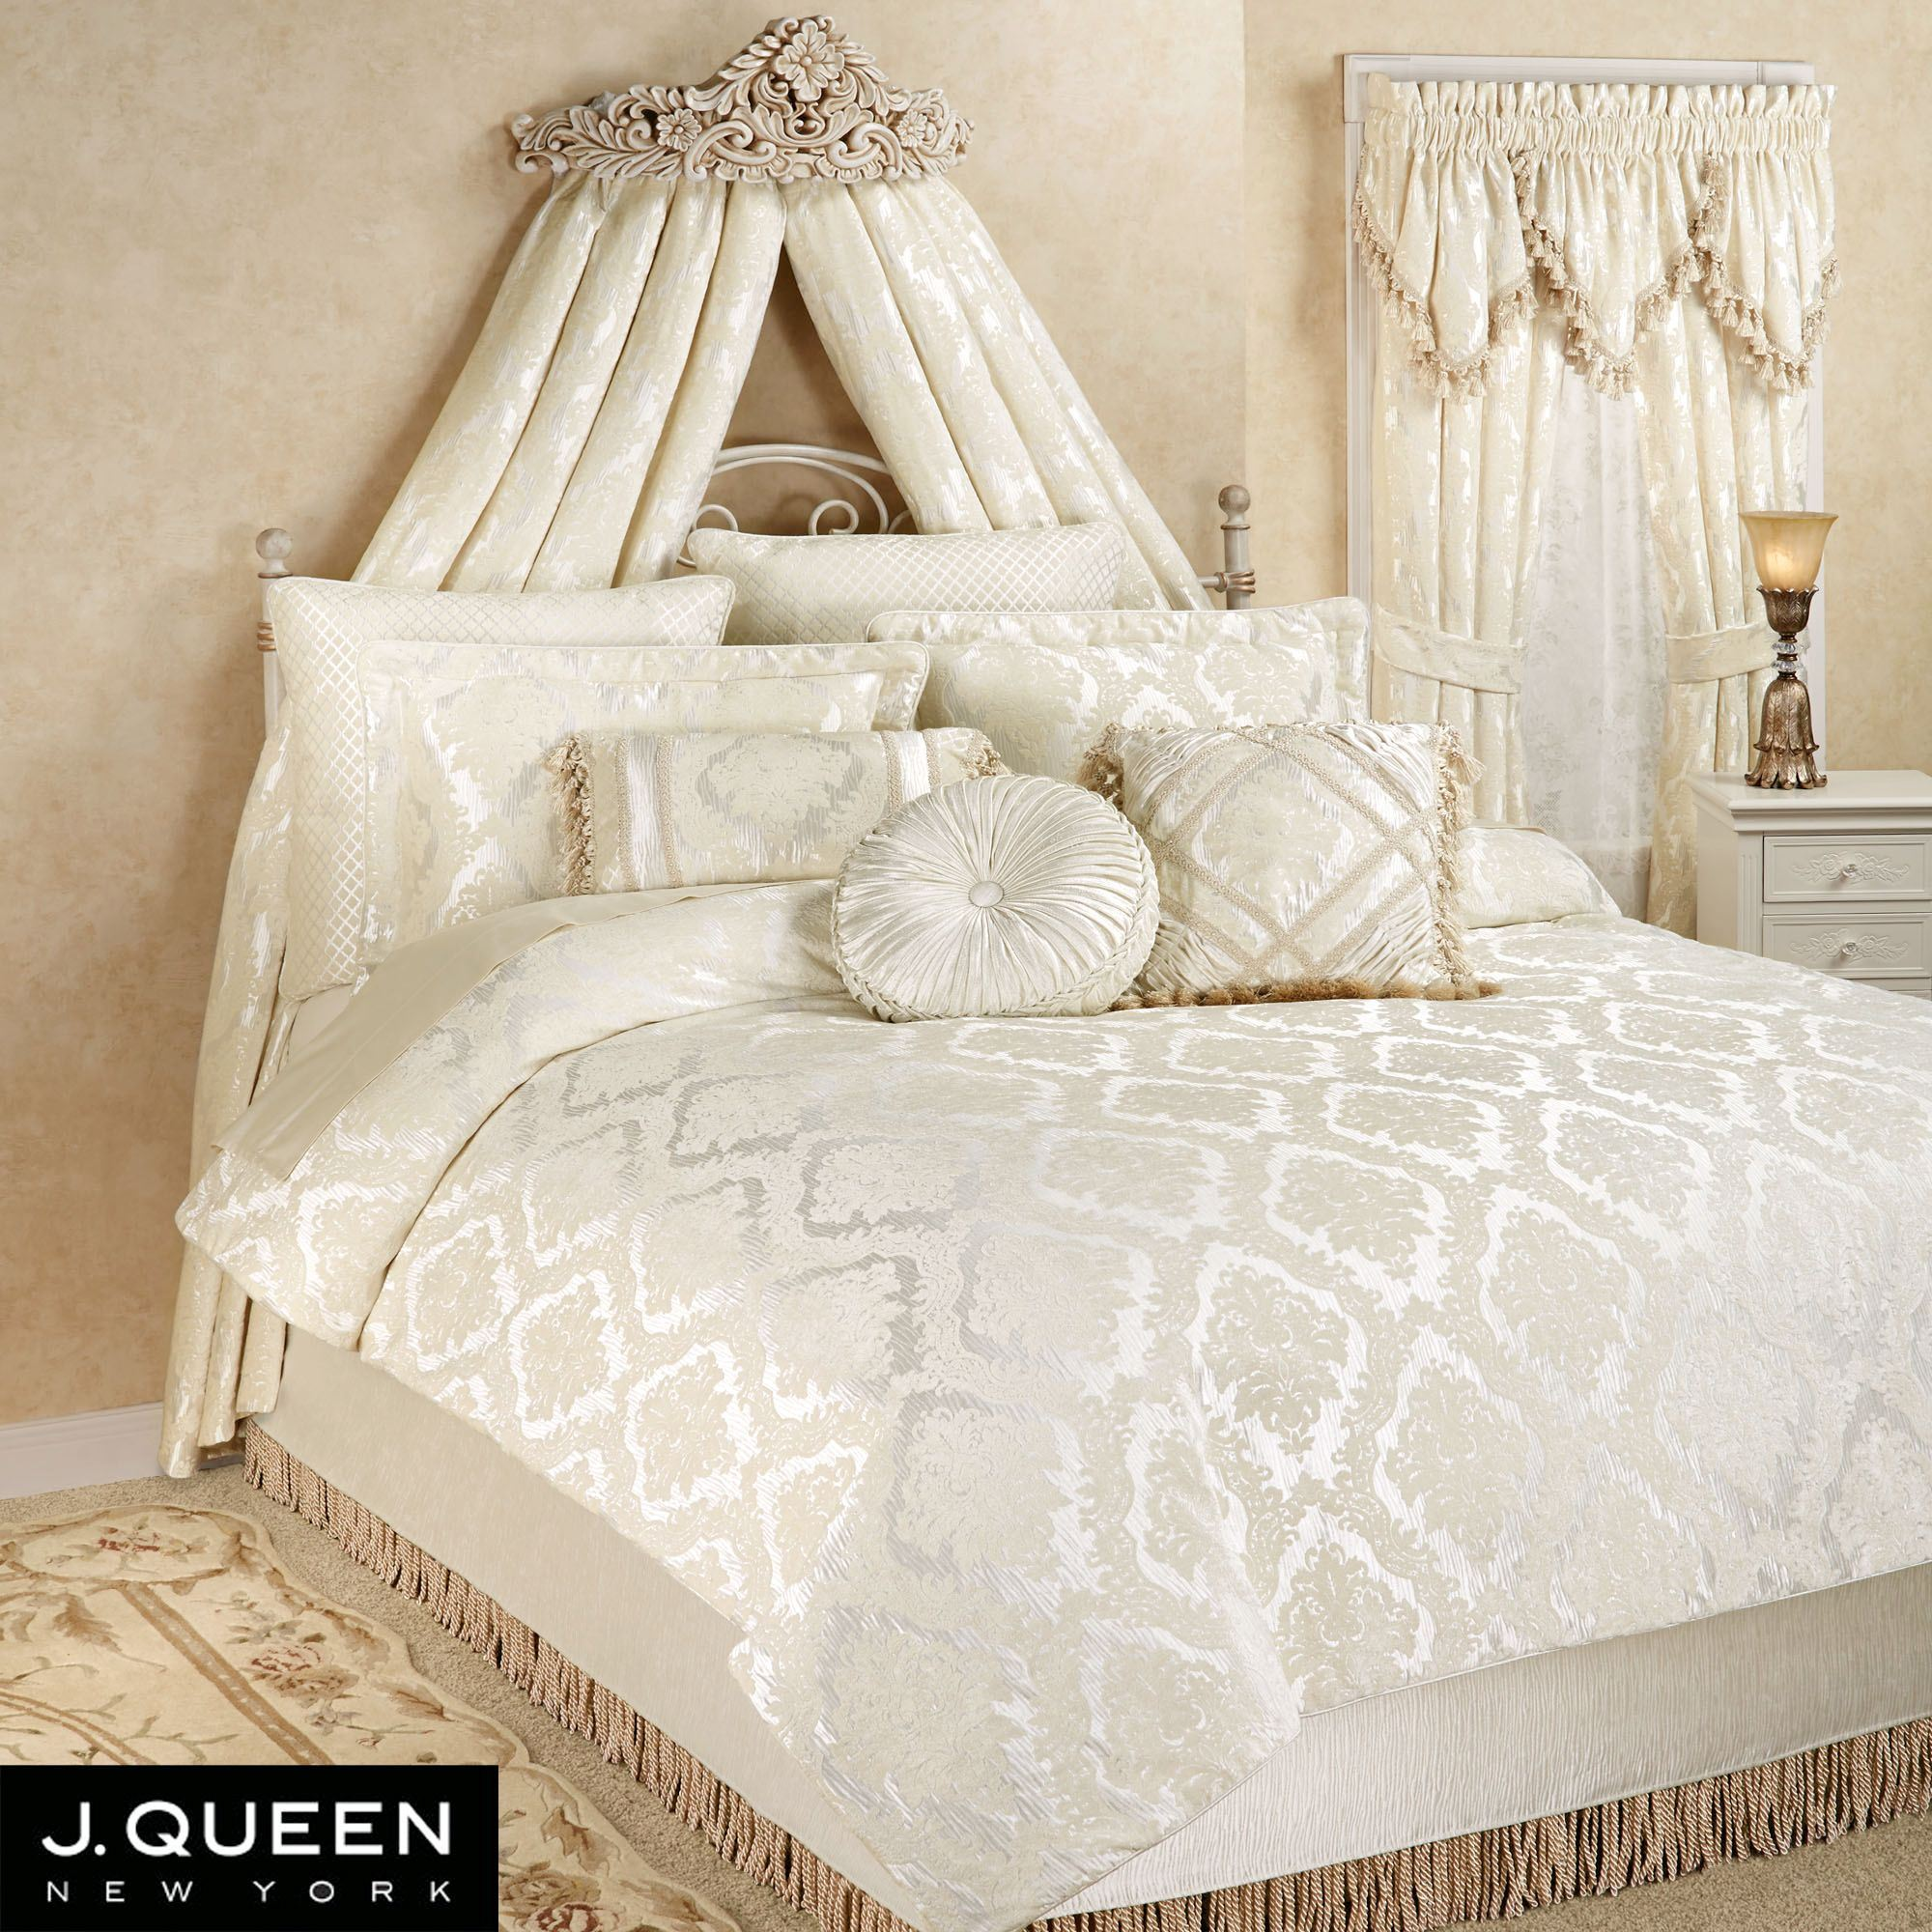 macy texture collection bedding full bath queen woven hotel pin collections s comforter york set bed new